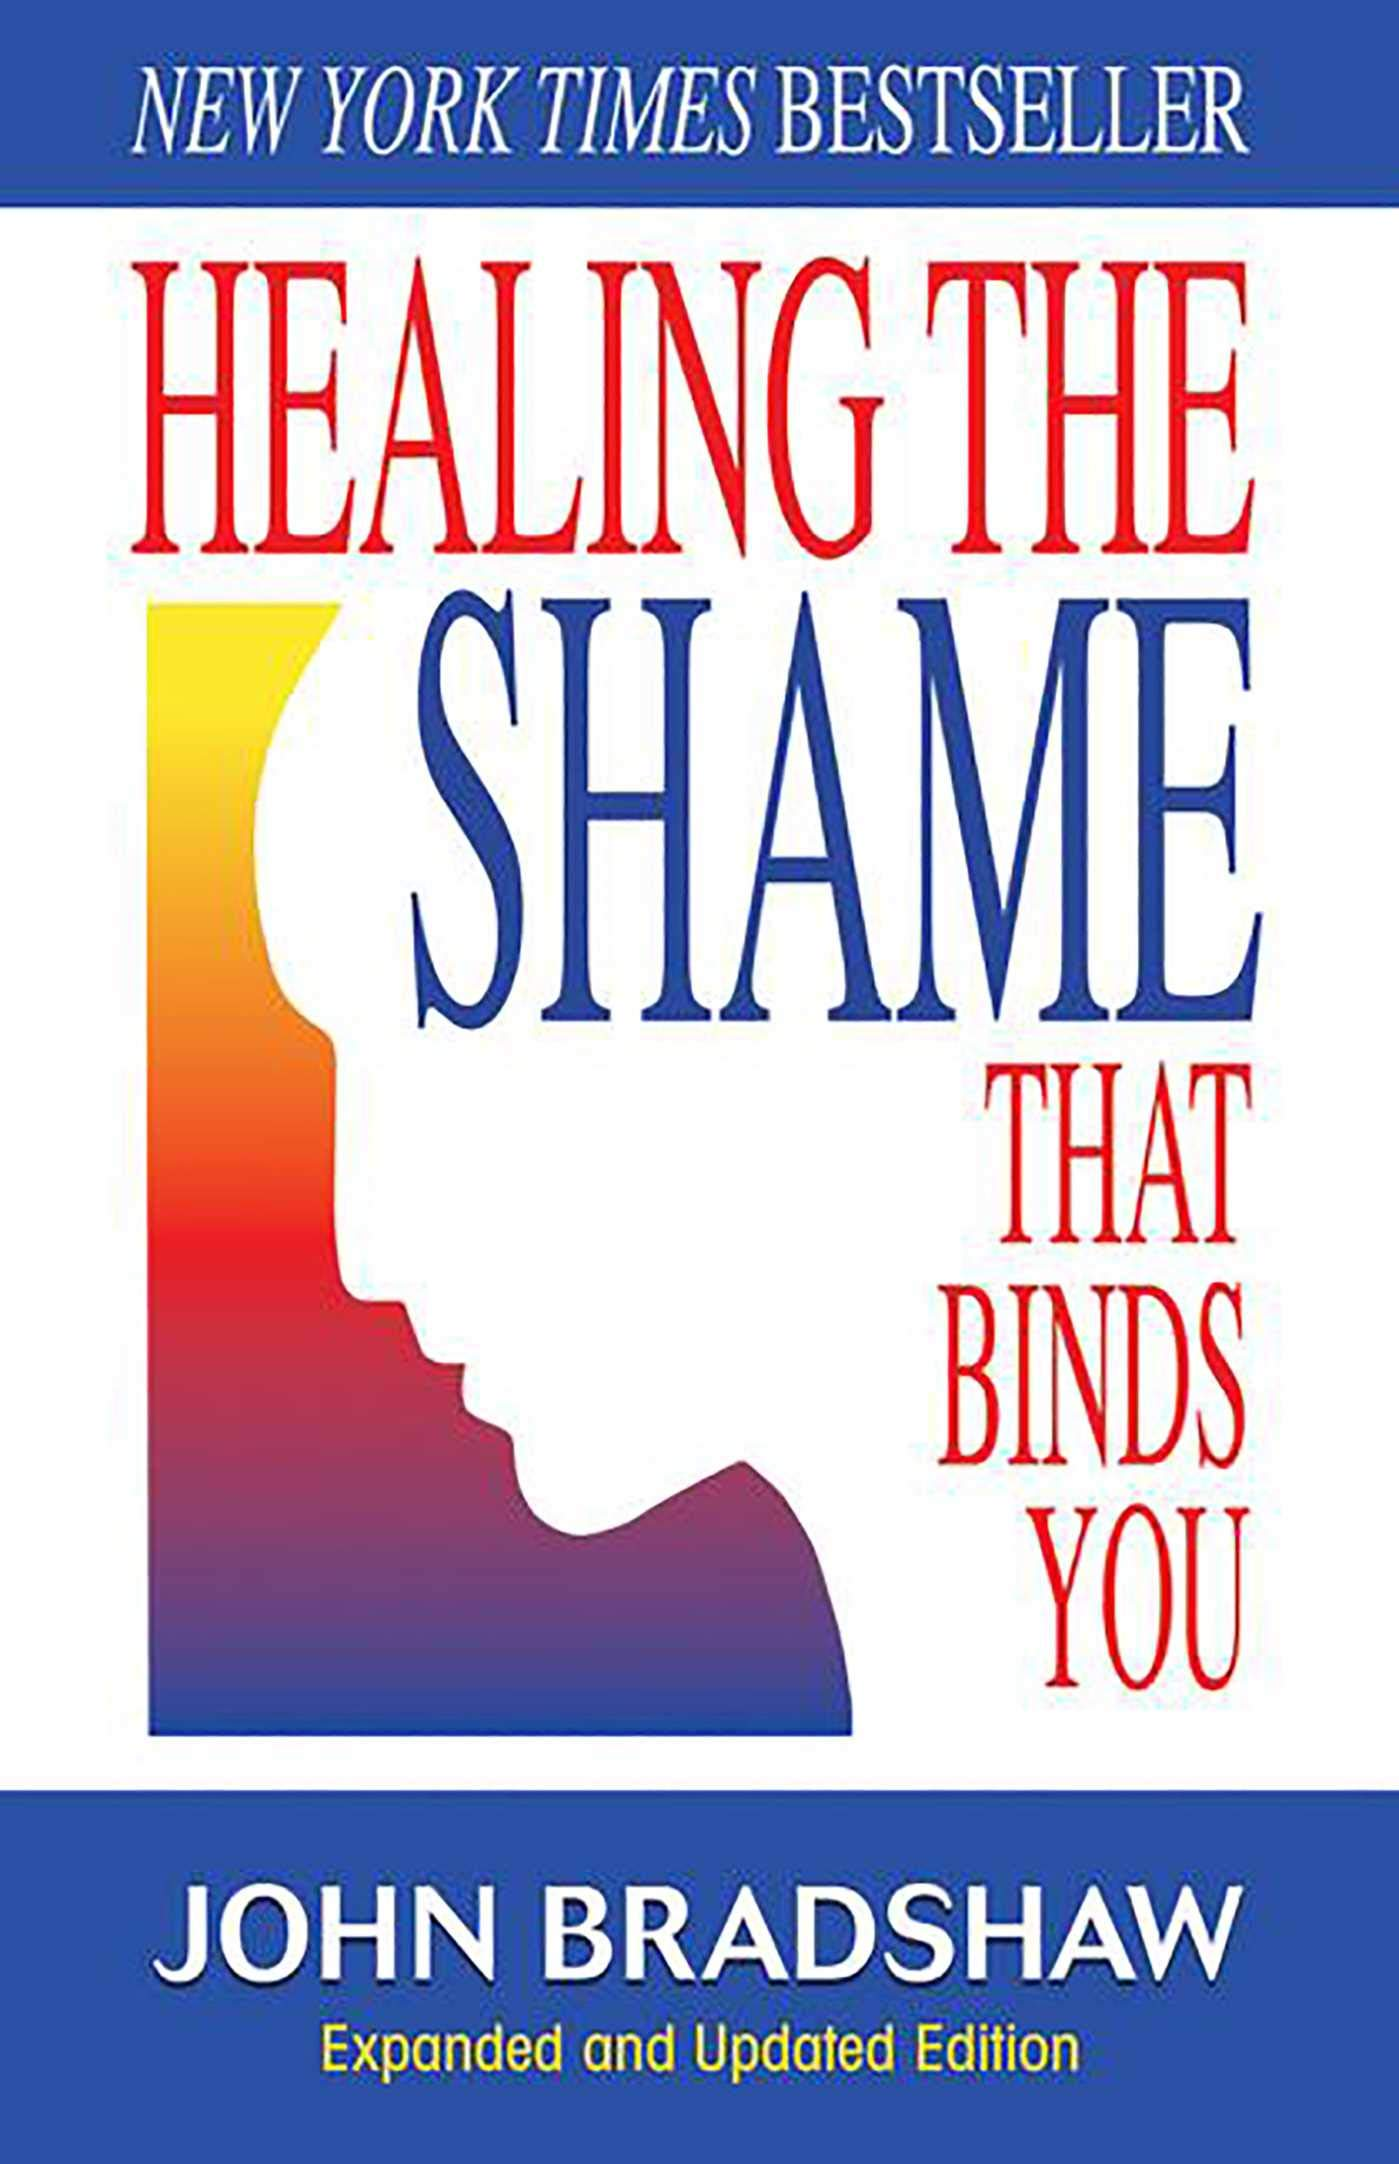 f9d4b91ee Healing the Shame that Binds You (Recovery Classics)  John Bradshaw ...